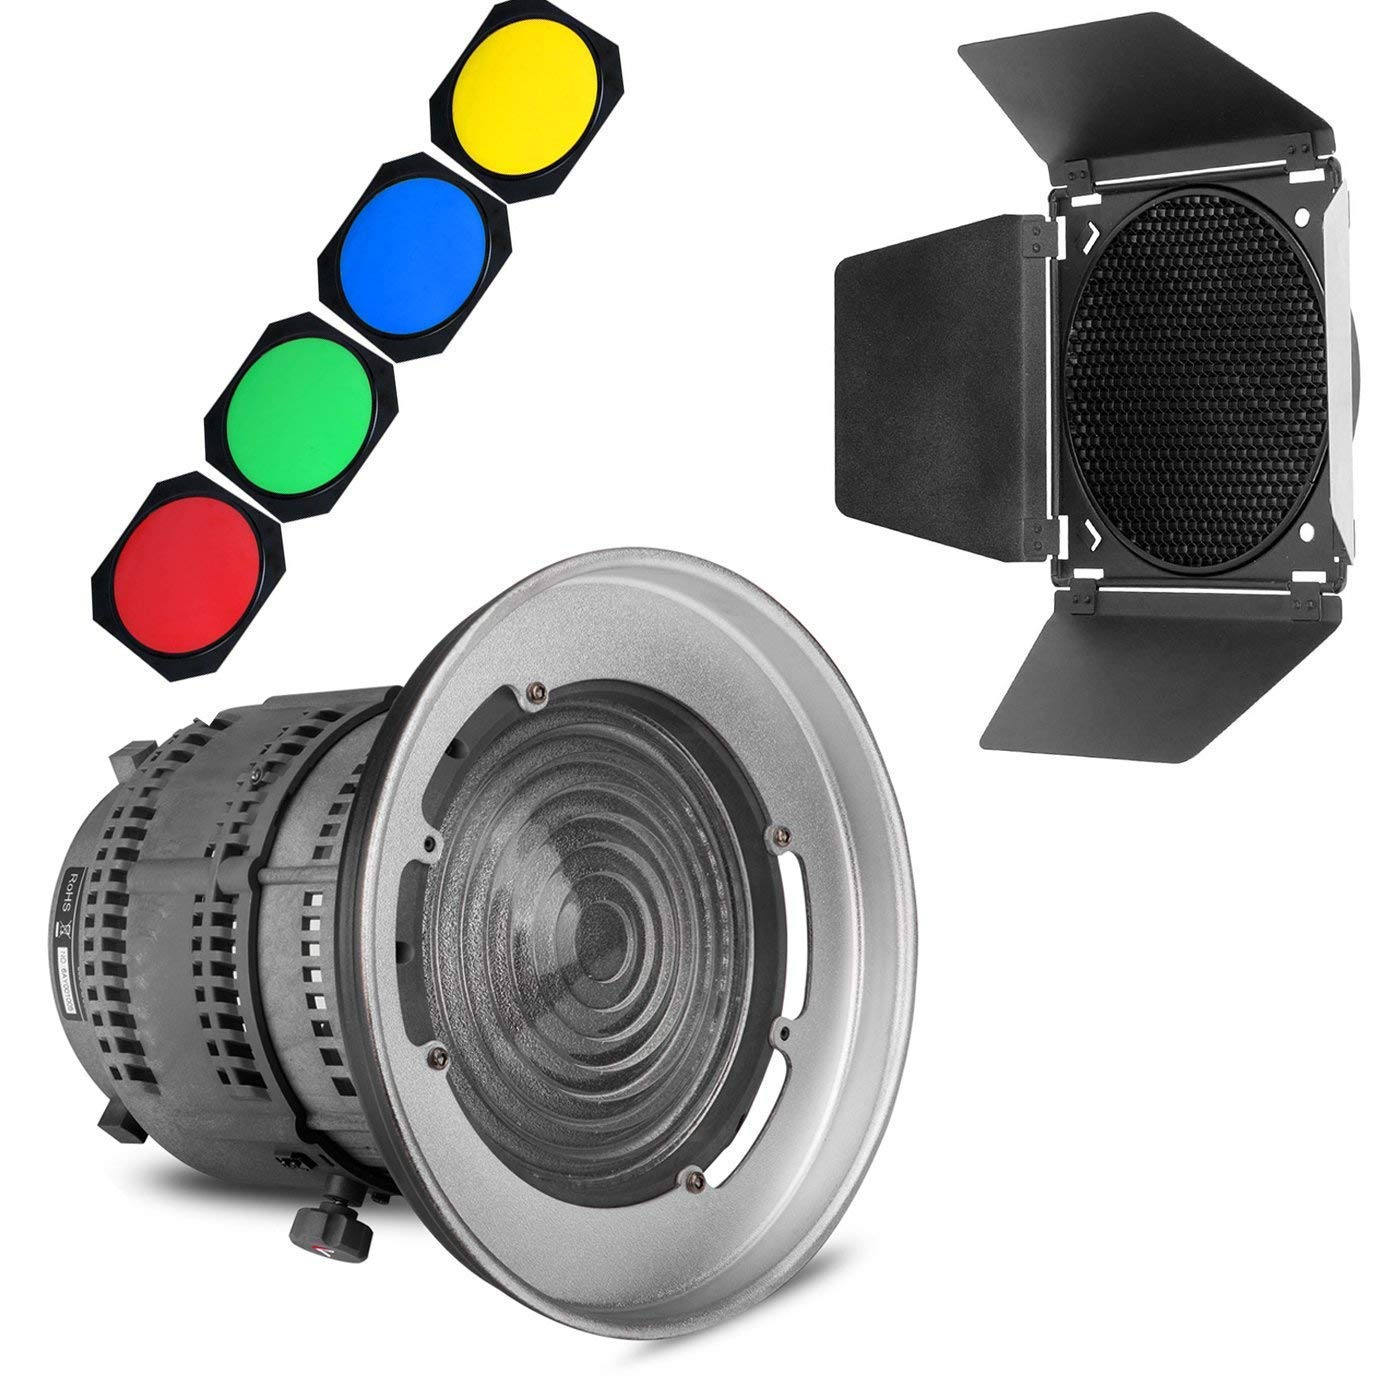 Aputure Fresnel Lens Mount with Barn Door Honeycomb Grid and 4 Color Filters for Aputure COB 300D 120D 120T Light Storm LS C300D 4332004168